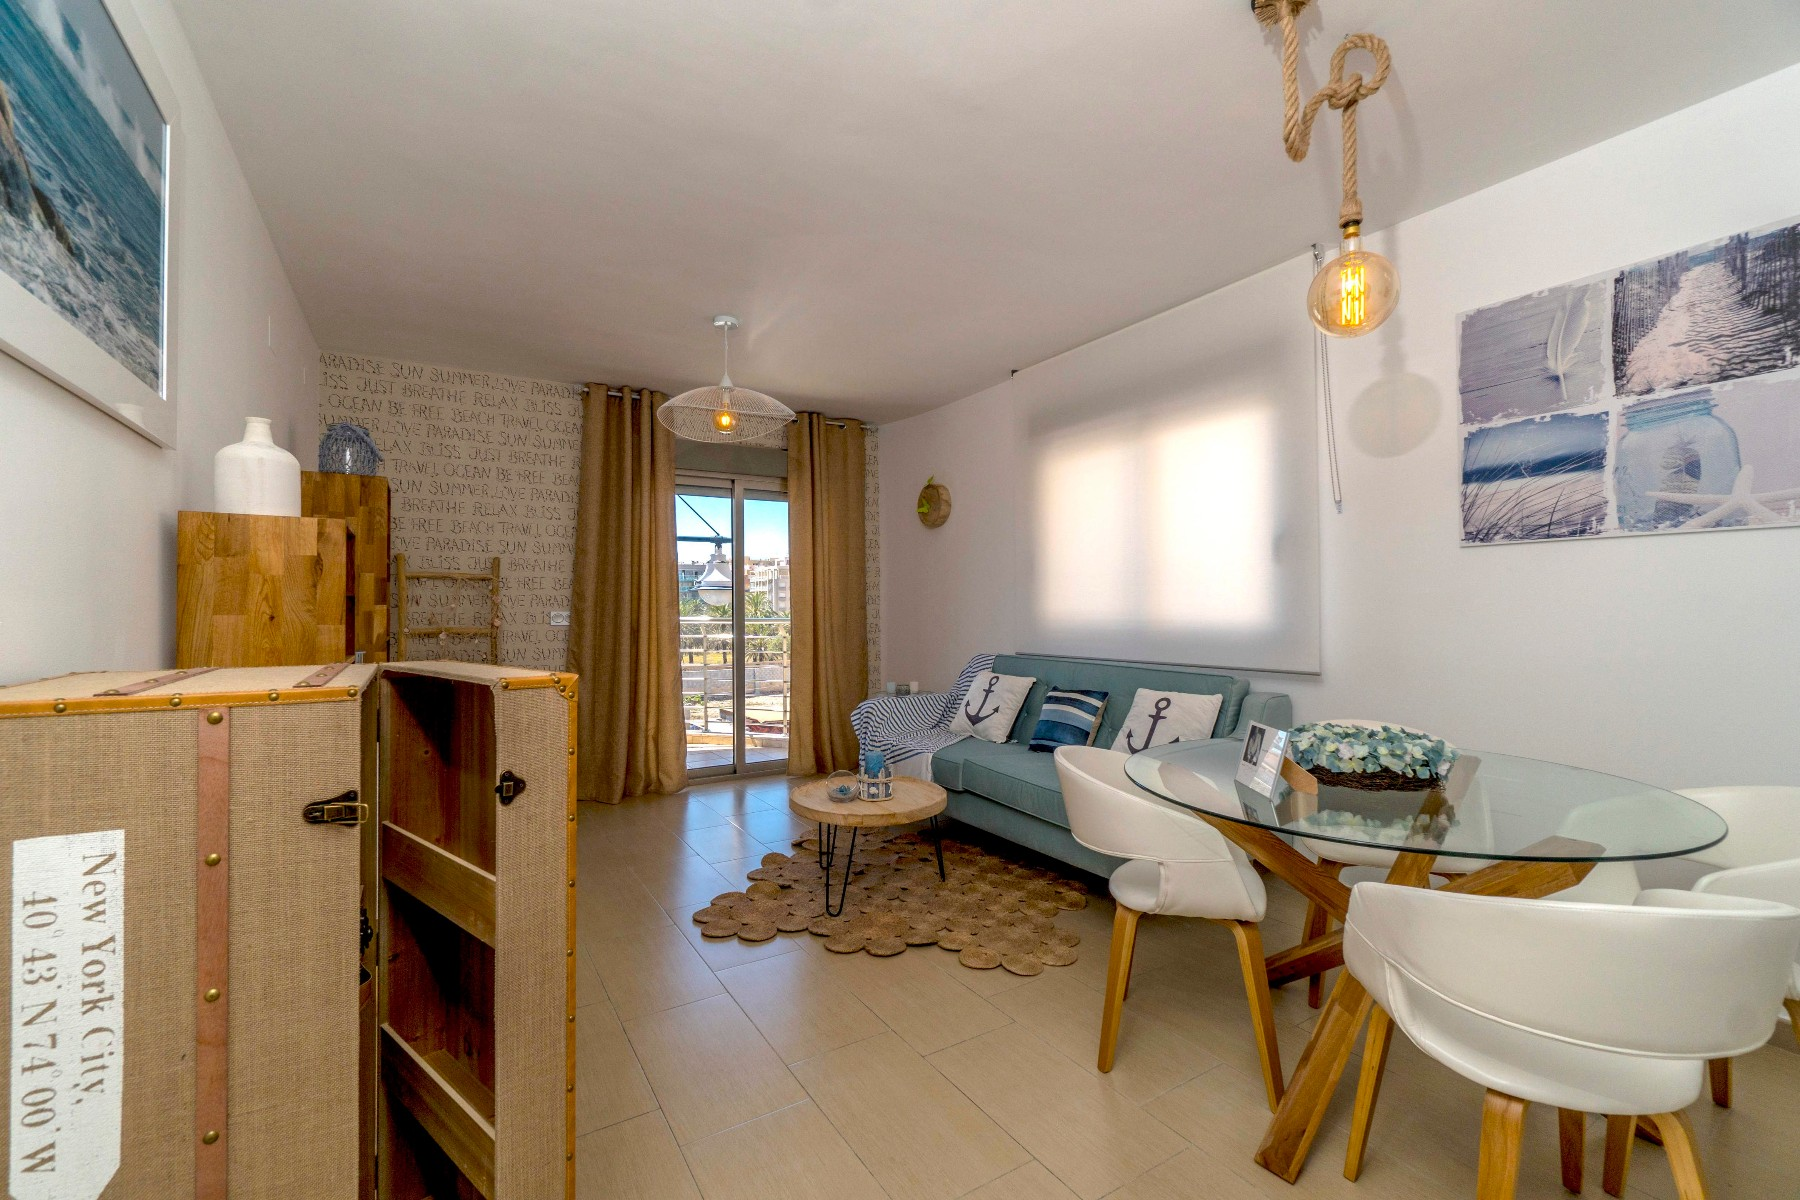 o 1cctdskicl0g58gac7dm0e6m2f - Navy style and sea views in Torrevieja (Alicante)